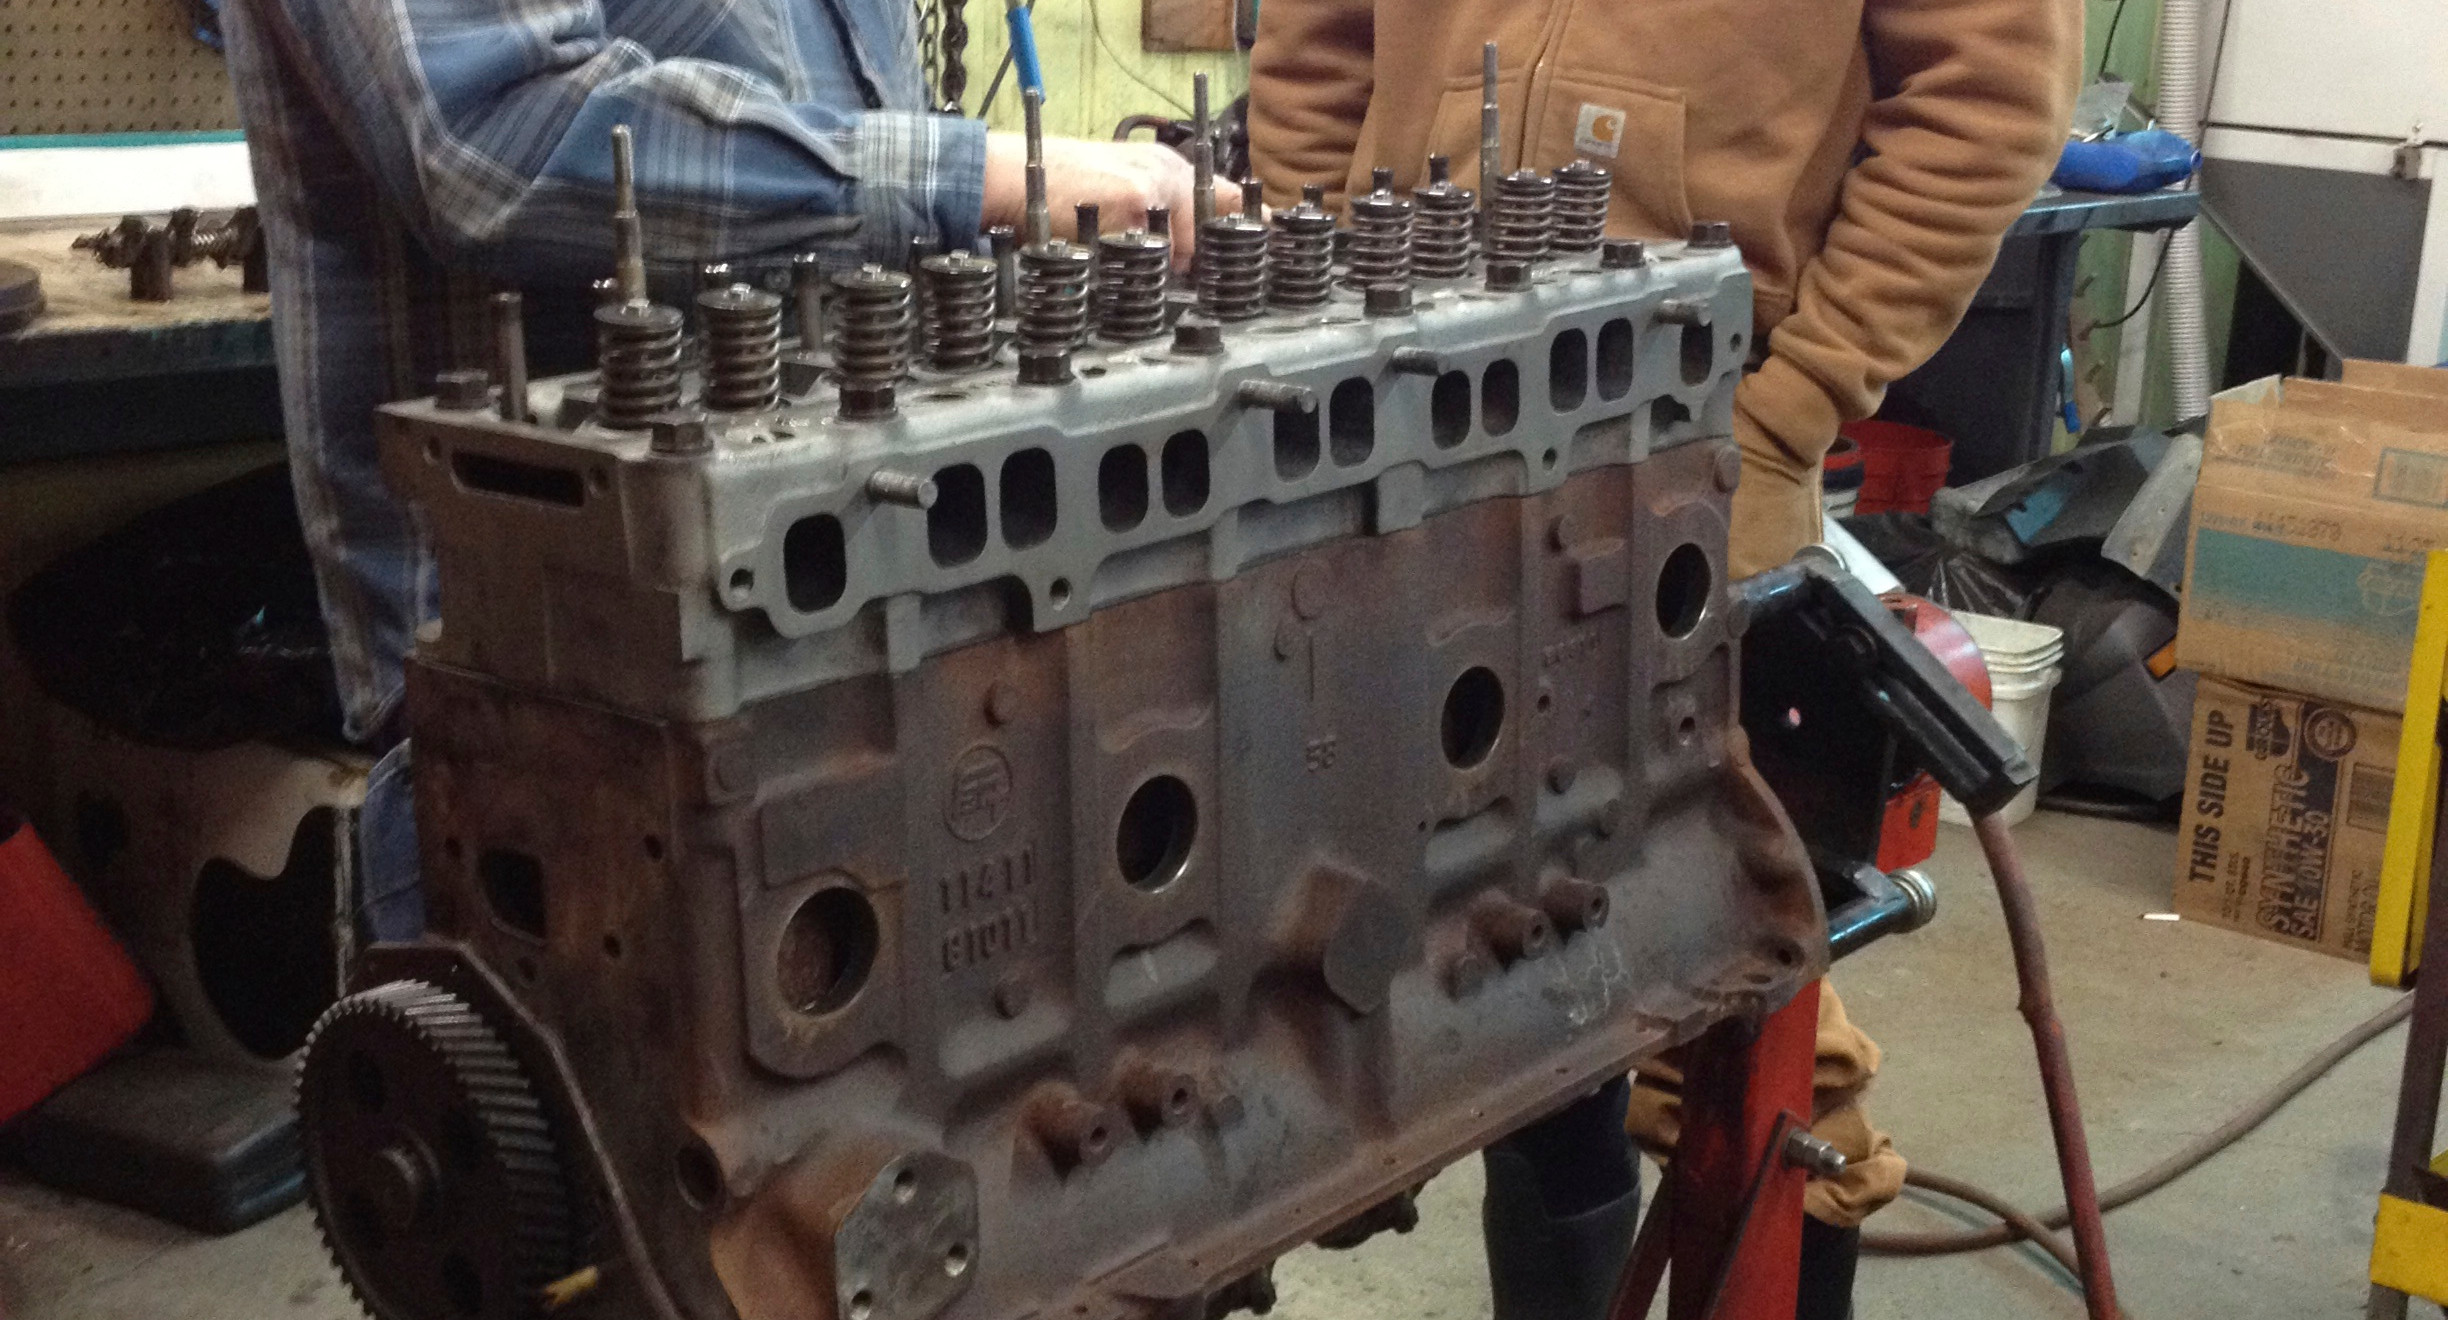 We did get a mechanic to rebuild the engine for us, as we had no clue how to even start